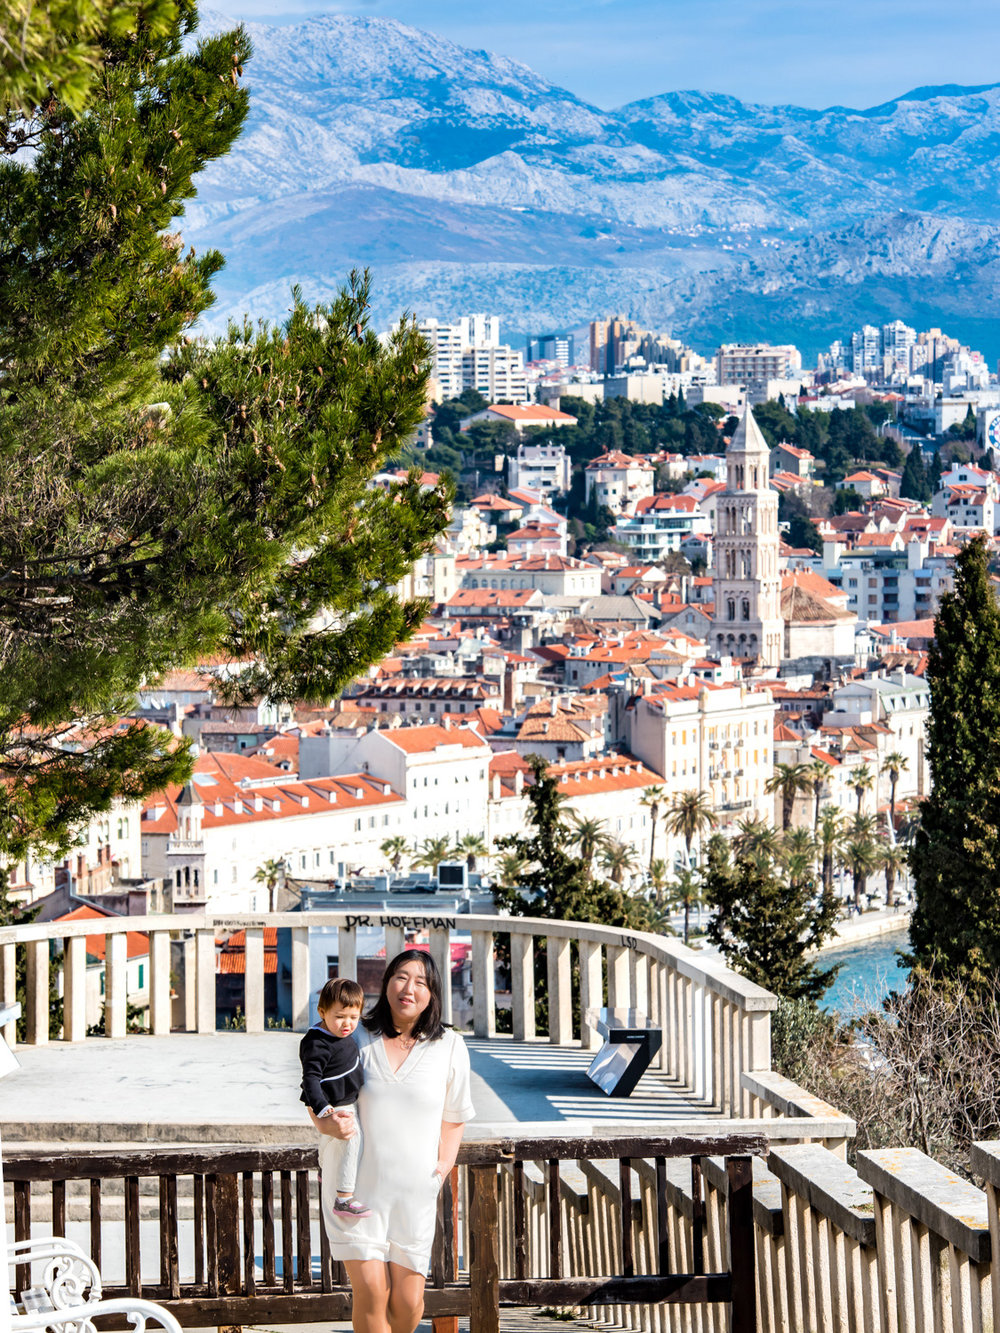 Looking down on Split, Croatia from Marjan Park.